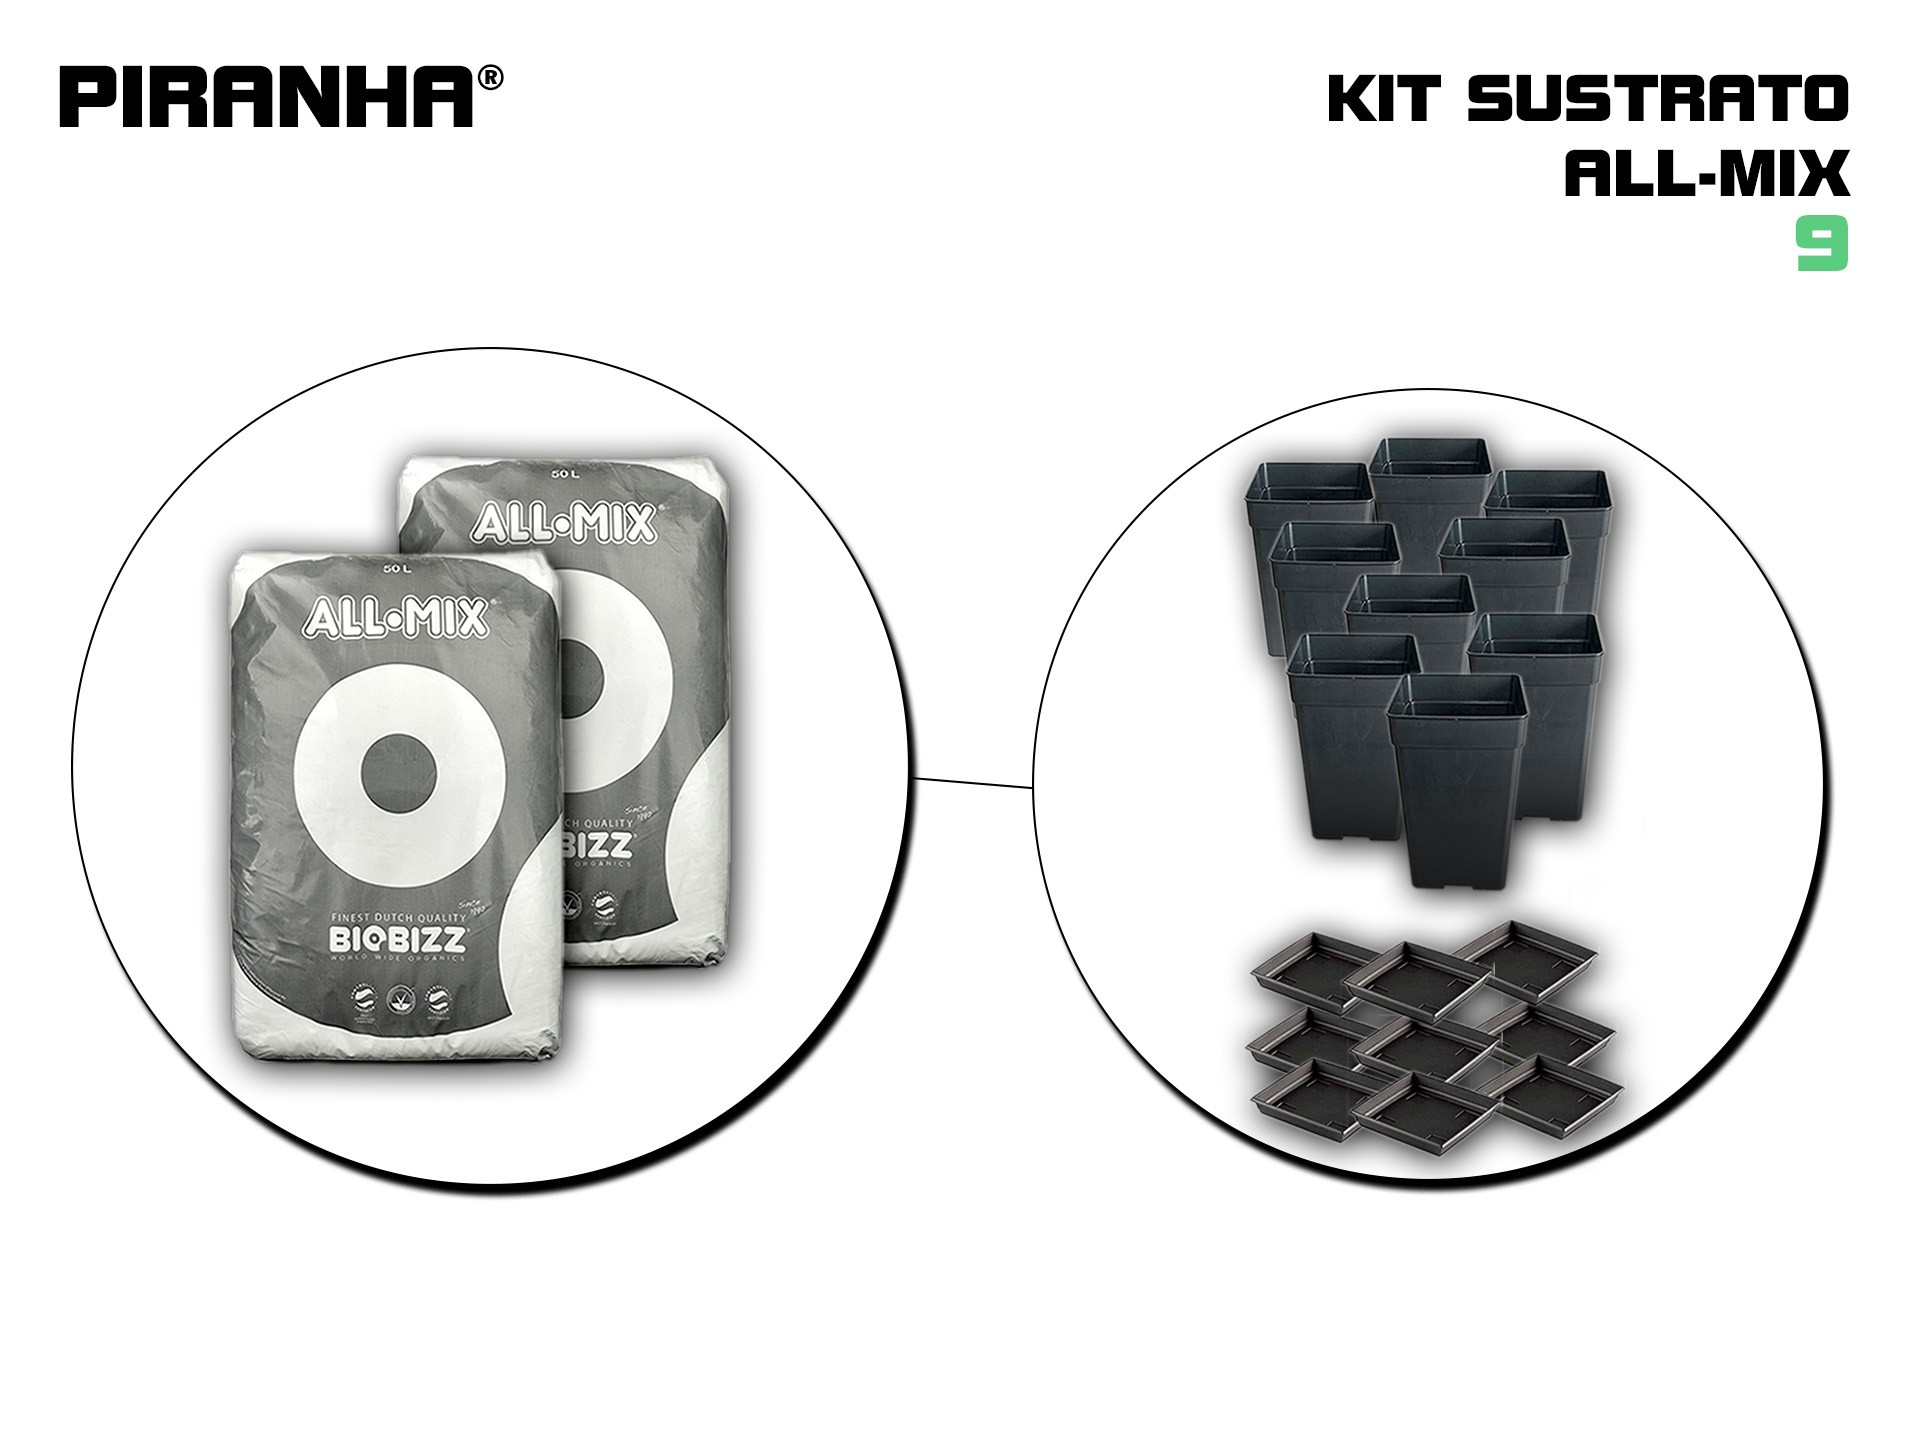 Kit Sustrato 9 All-Mix